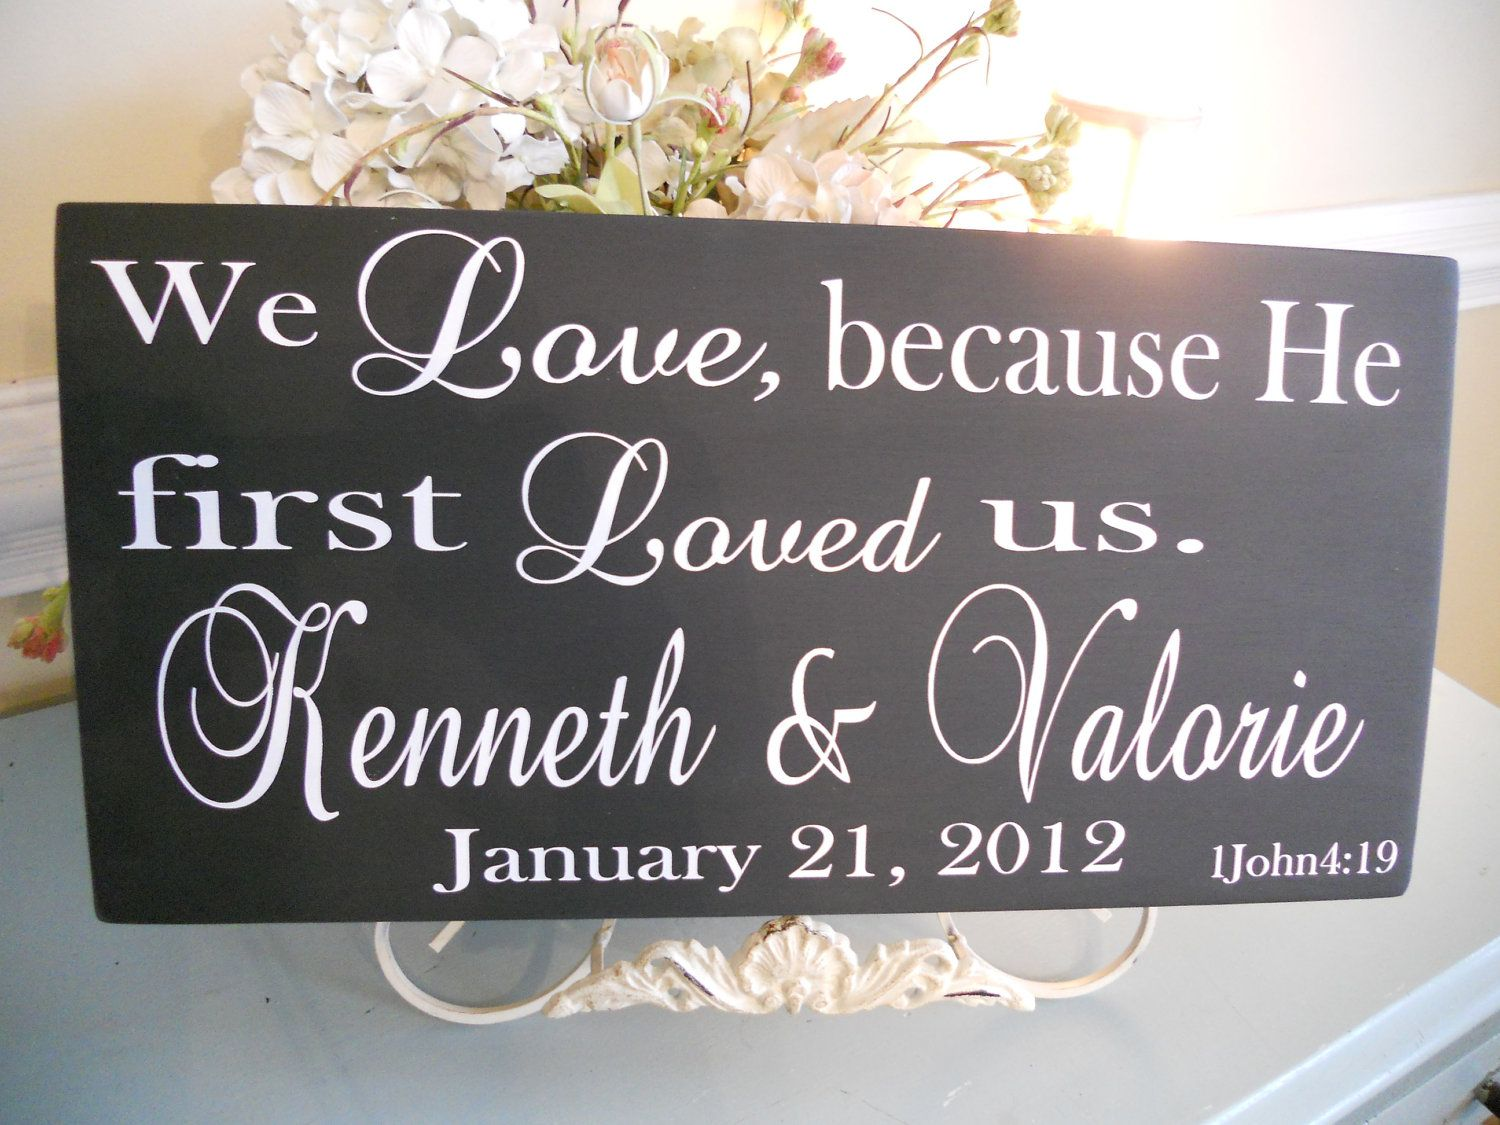 Bible Quotes For Wedding Religious Personalized Weddingfamily Sign With Bible Verse.you